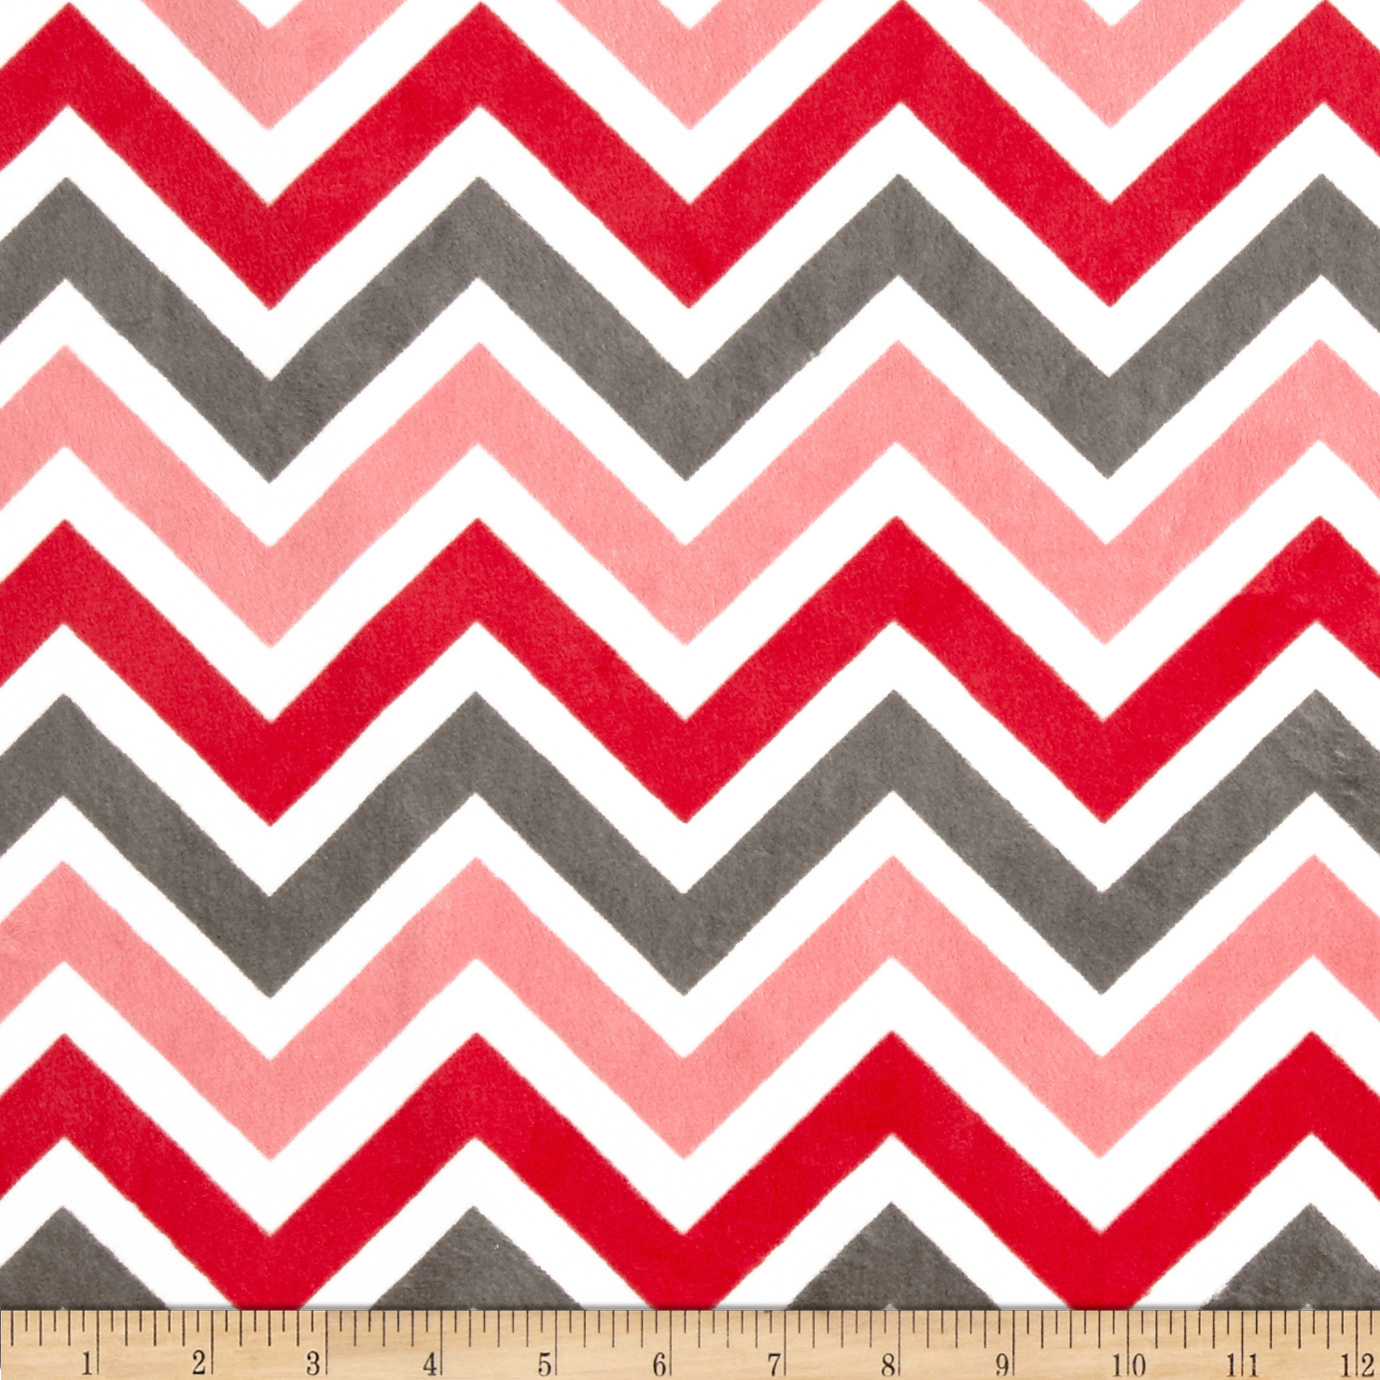 Minky Cuddle Zig Zag Watermelon/Charcoal